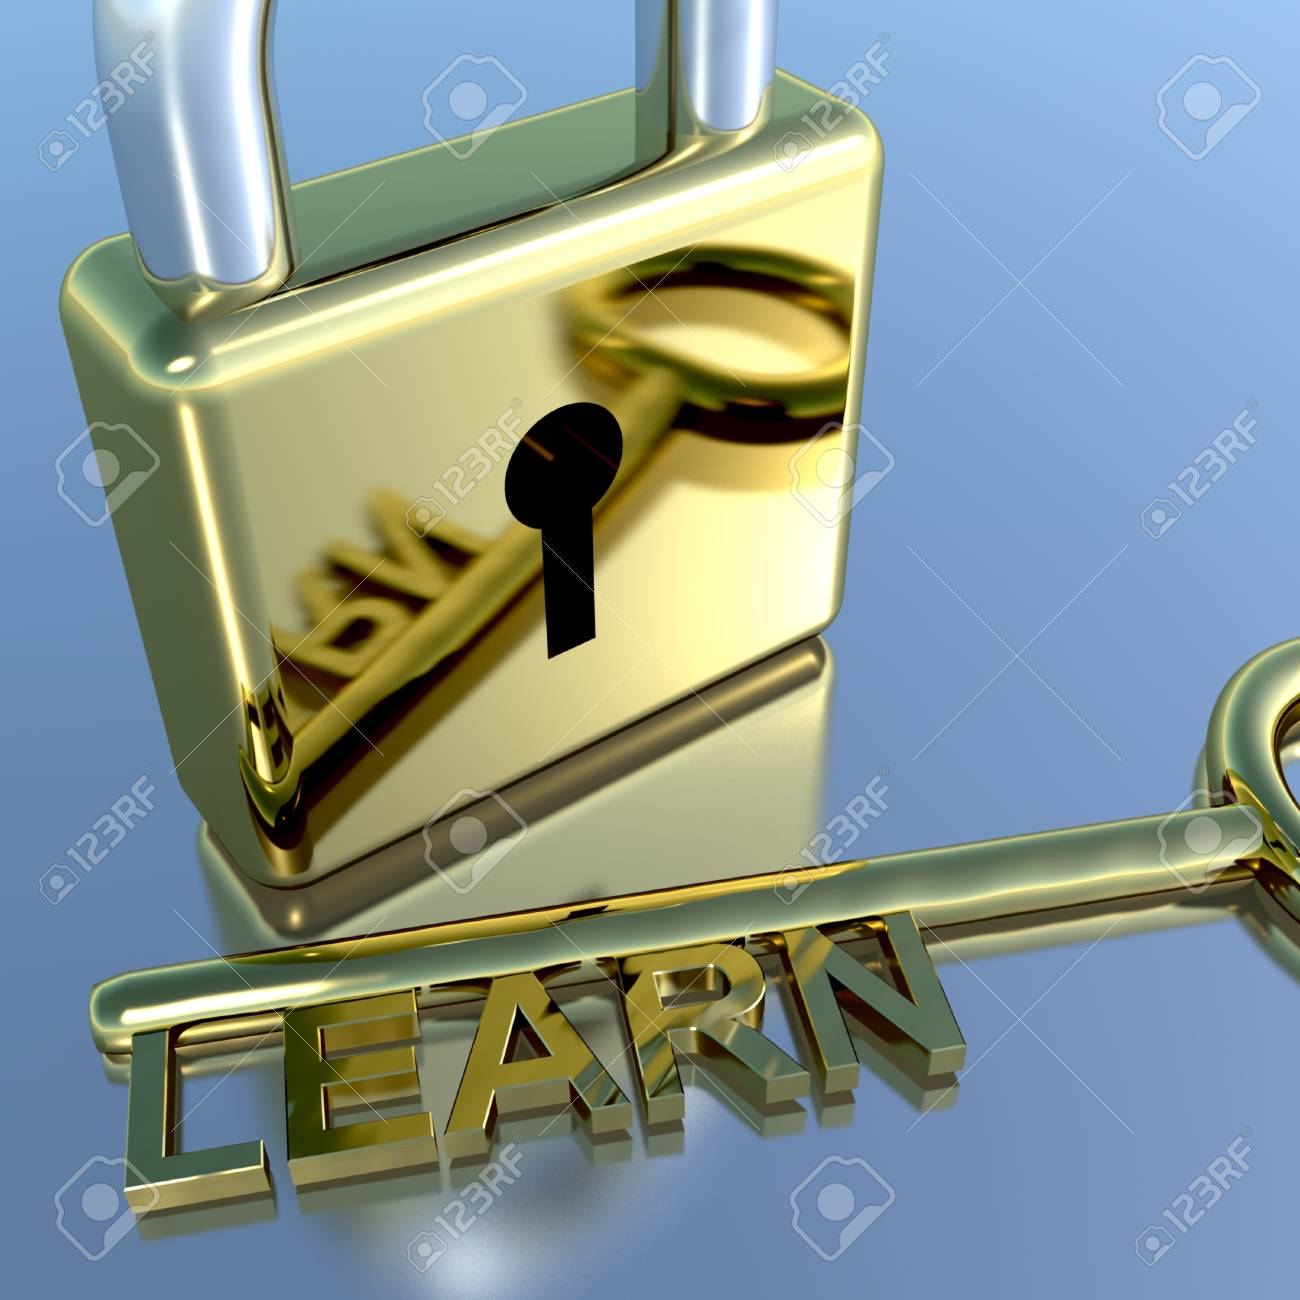 Padlock With Learn Key Showing Education Learning Or Courses Stock Photo - 11948212